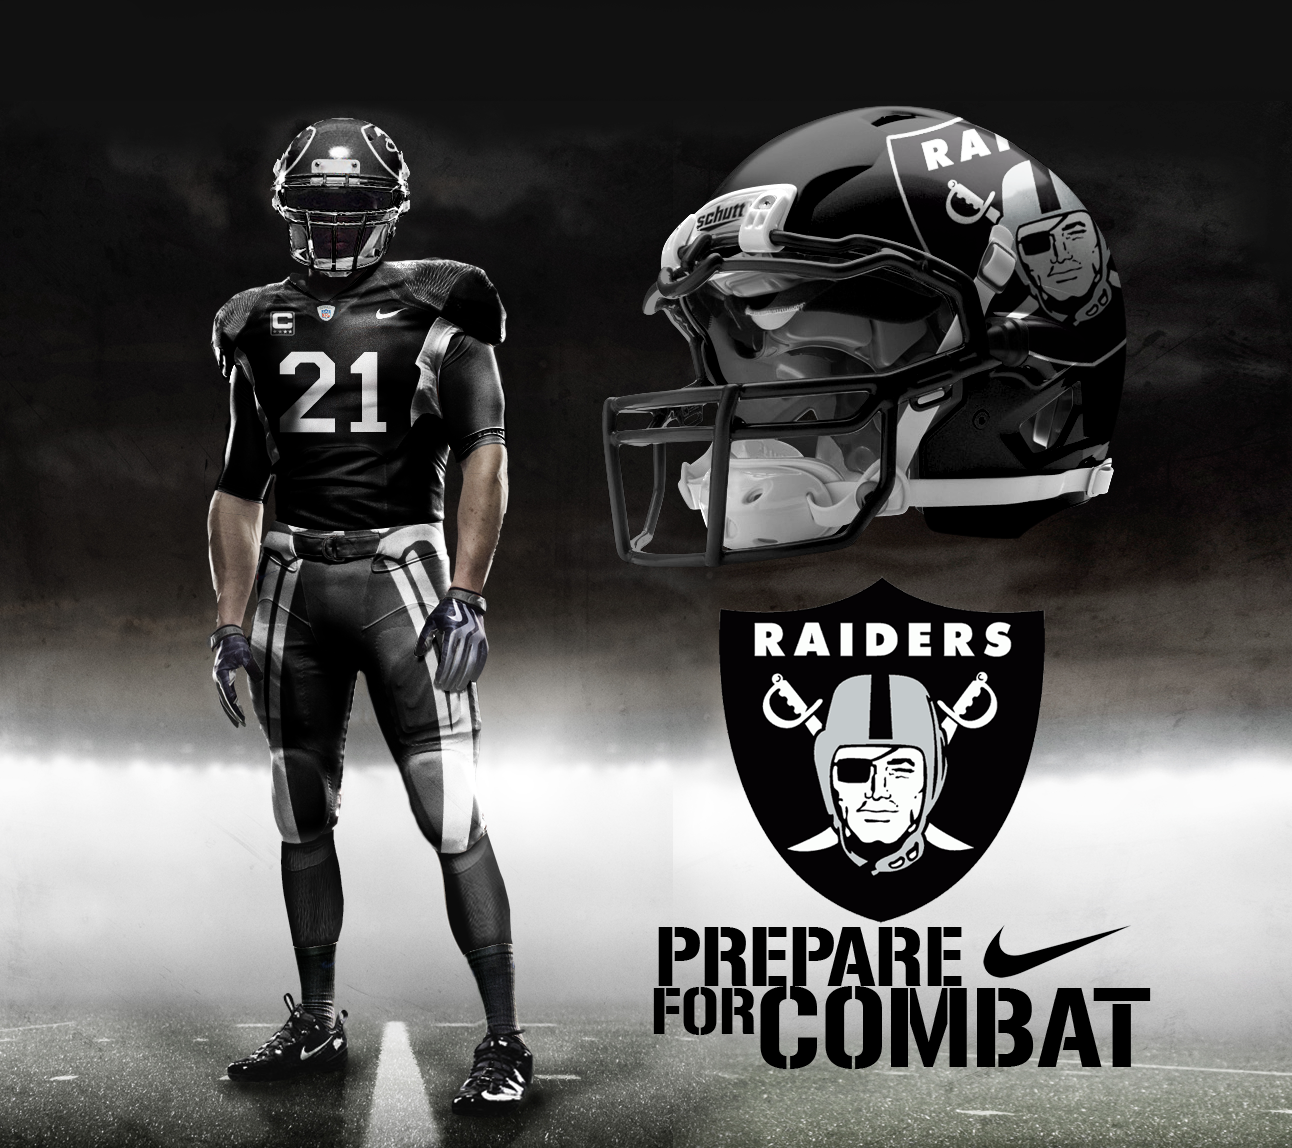 Oakland Raiders images